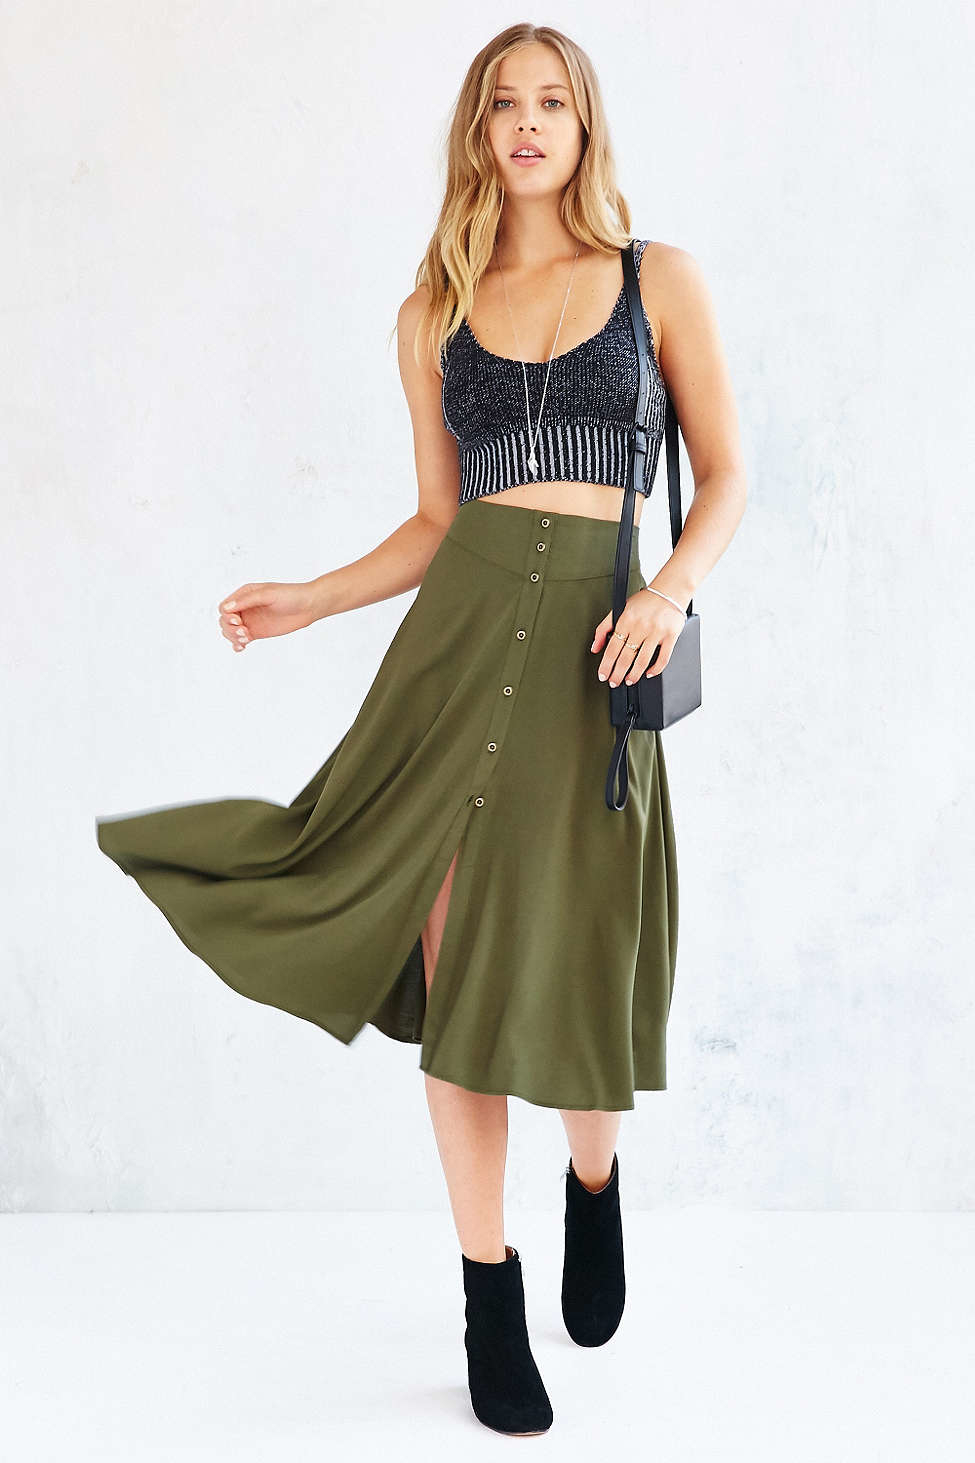 ee090cfc86 Ecote Button-down Midi Skirt in Green - Lyst